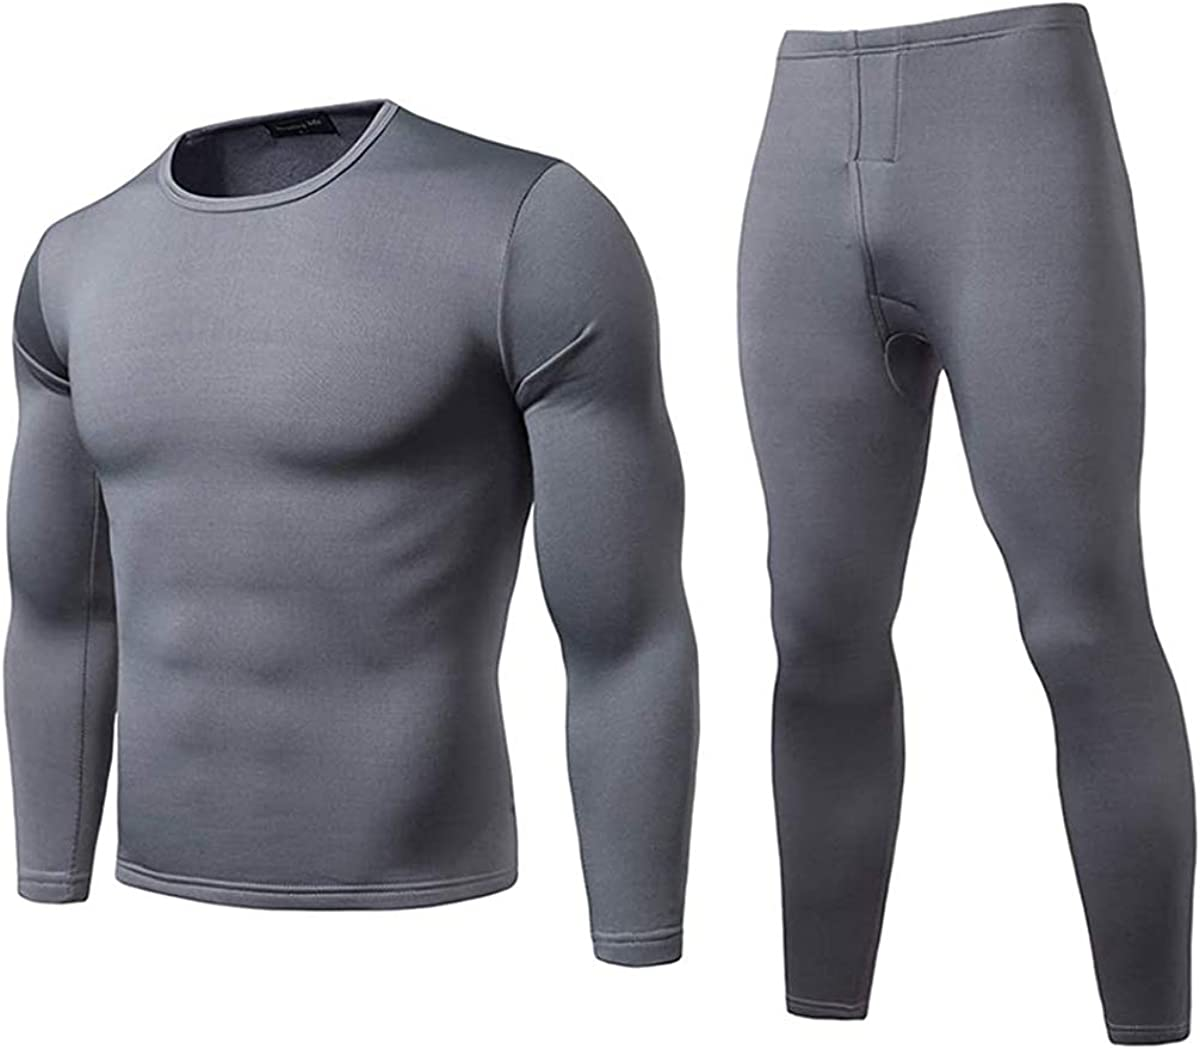 BABAMOON Men's Thermal Underwear Ultra Soft Thermal Underwear Set Winter Warm Johns Set Fleece Lined Tops Bottoms Outfits